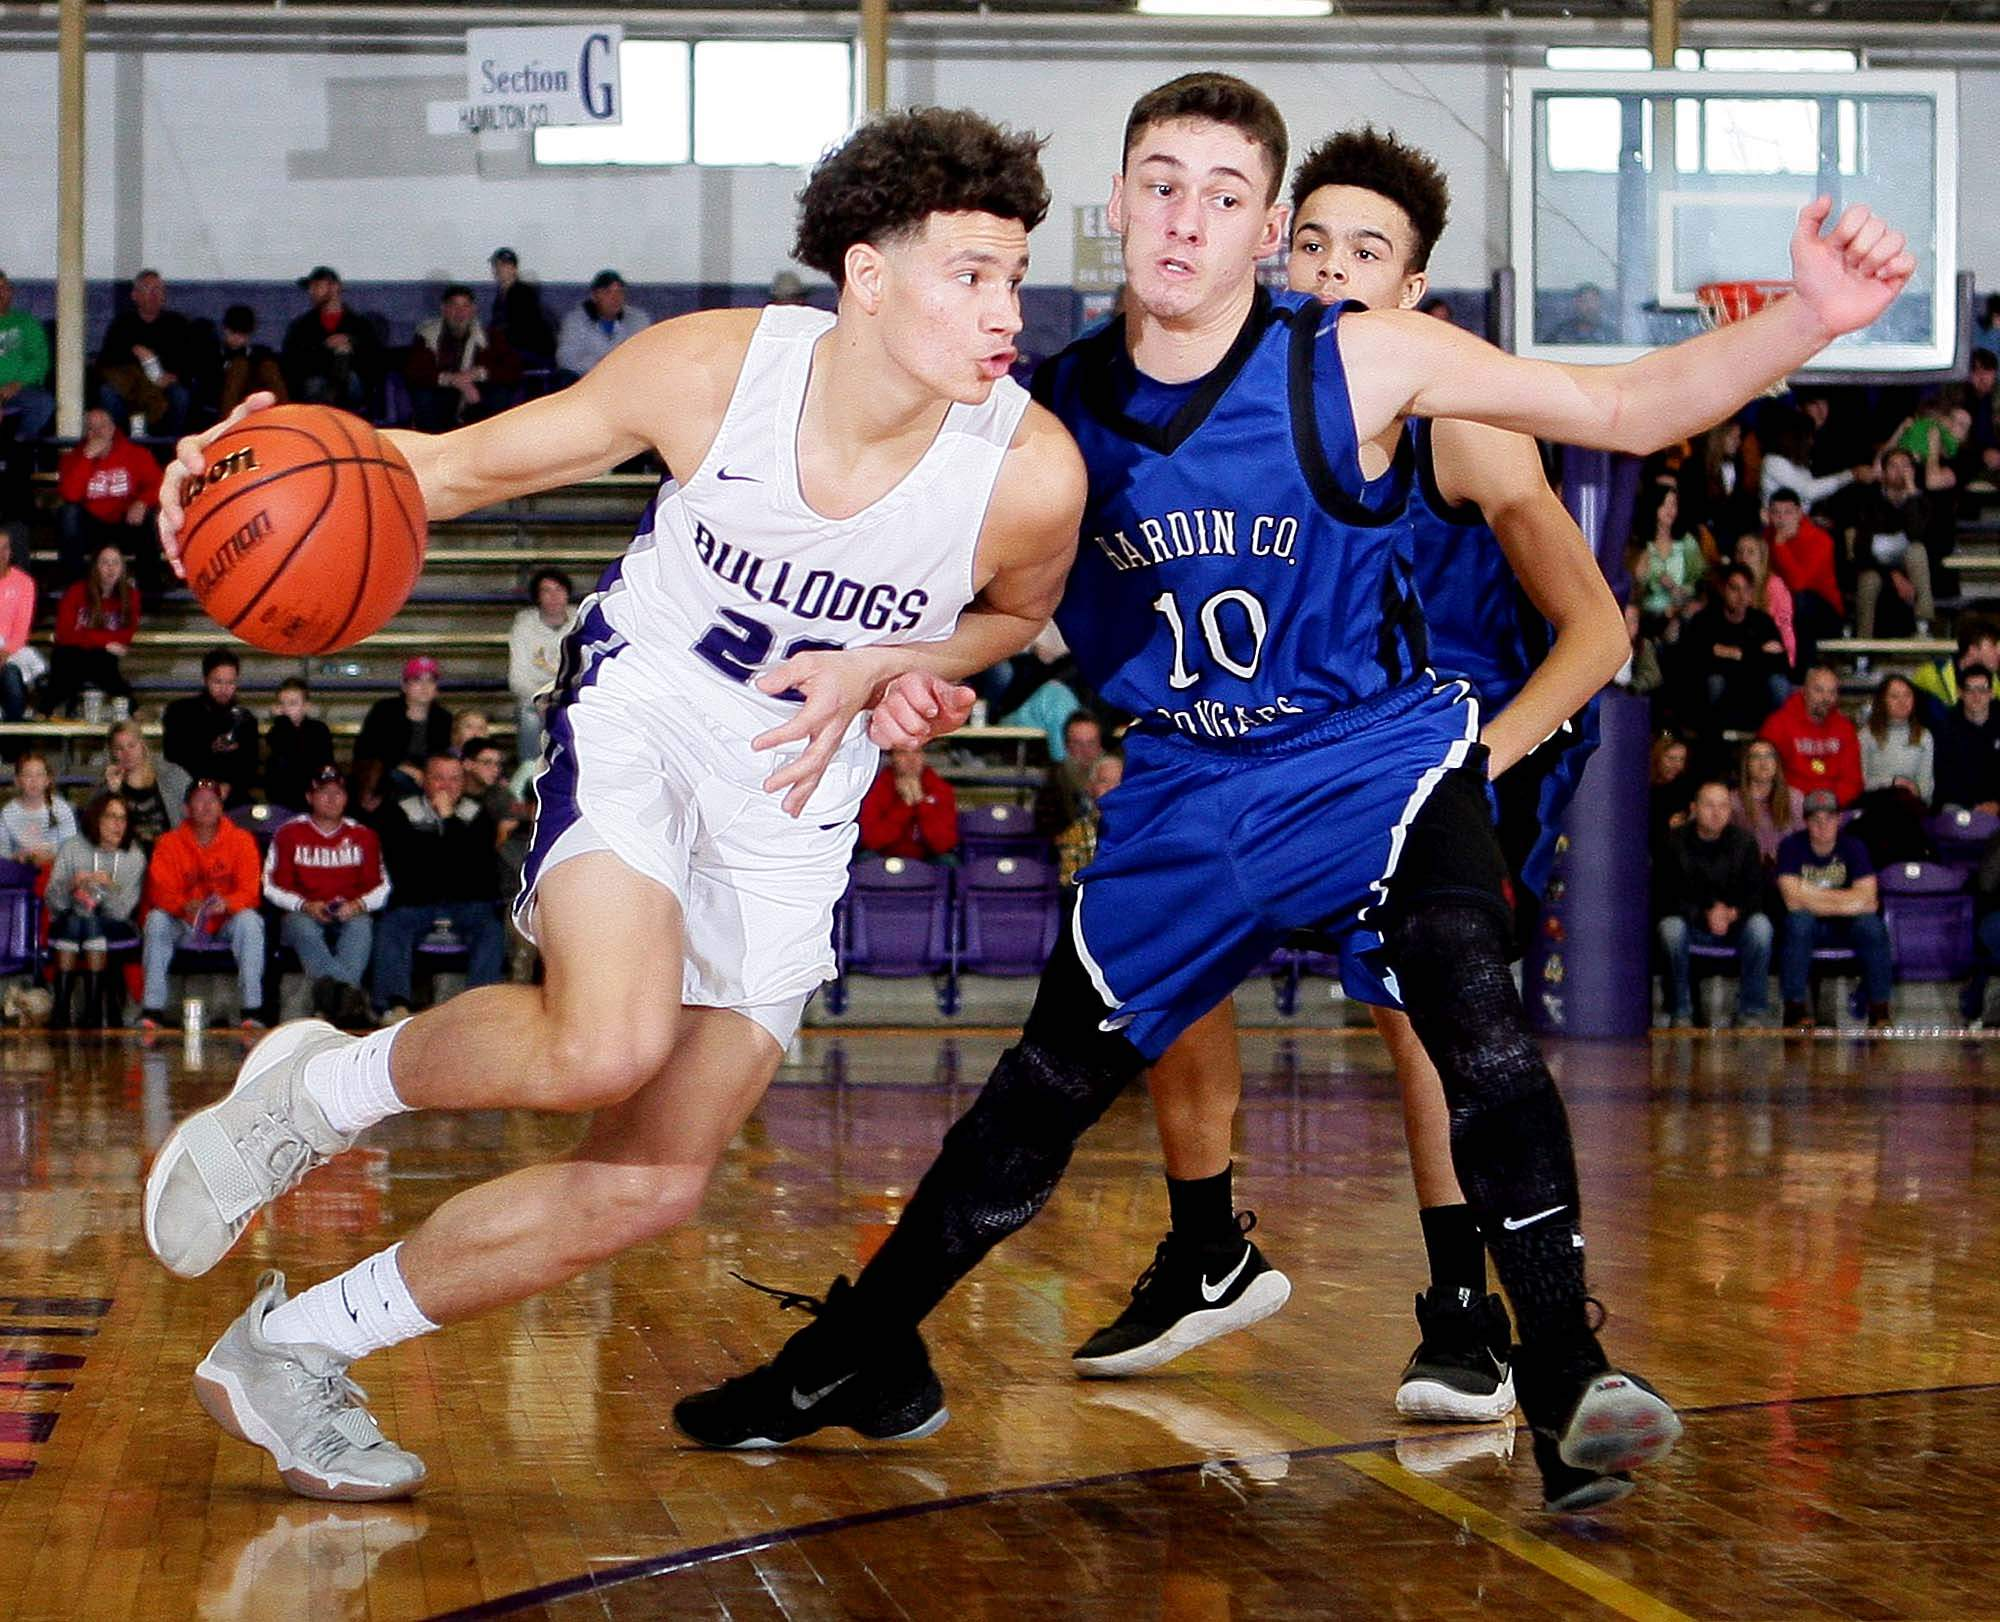 Harrisburg's Isaiah Saulsberry erupted for 21 points in the Bulldogs' win over Hardin County on Day 1 at the EHT.